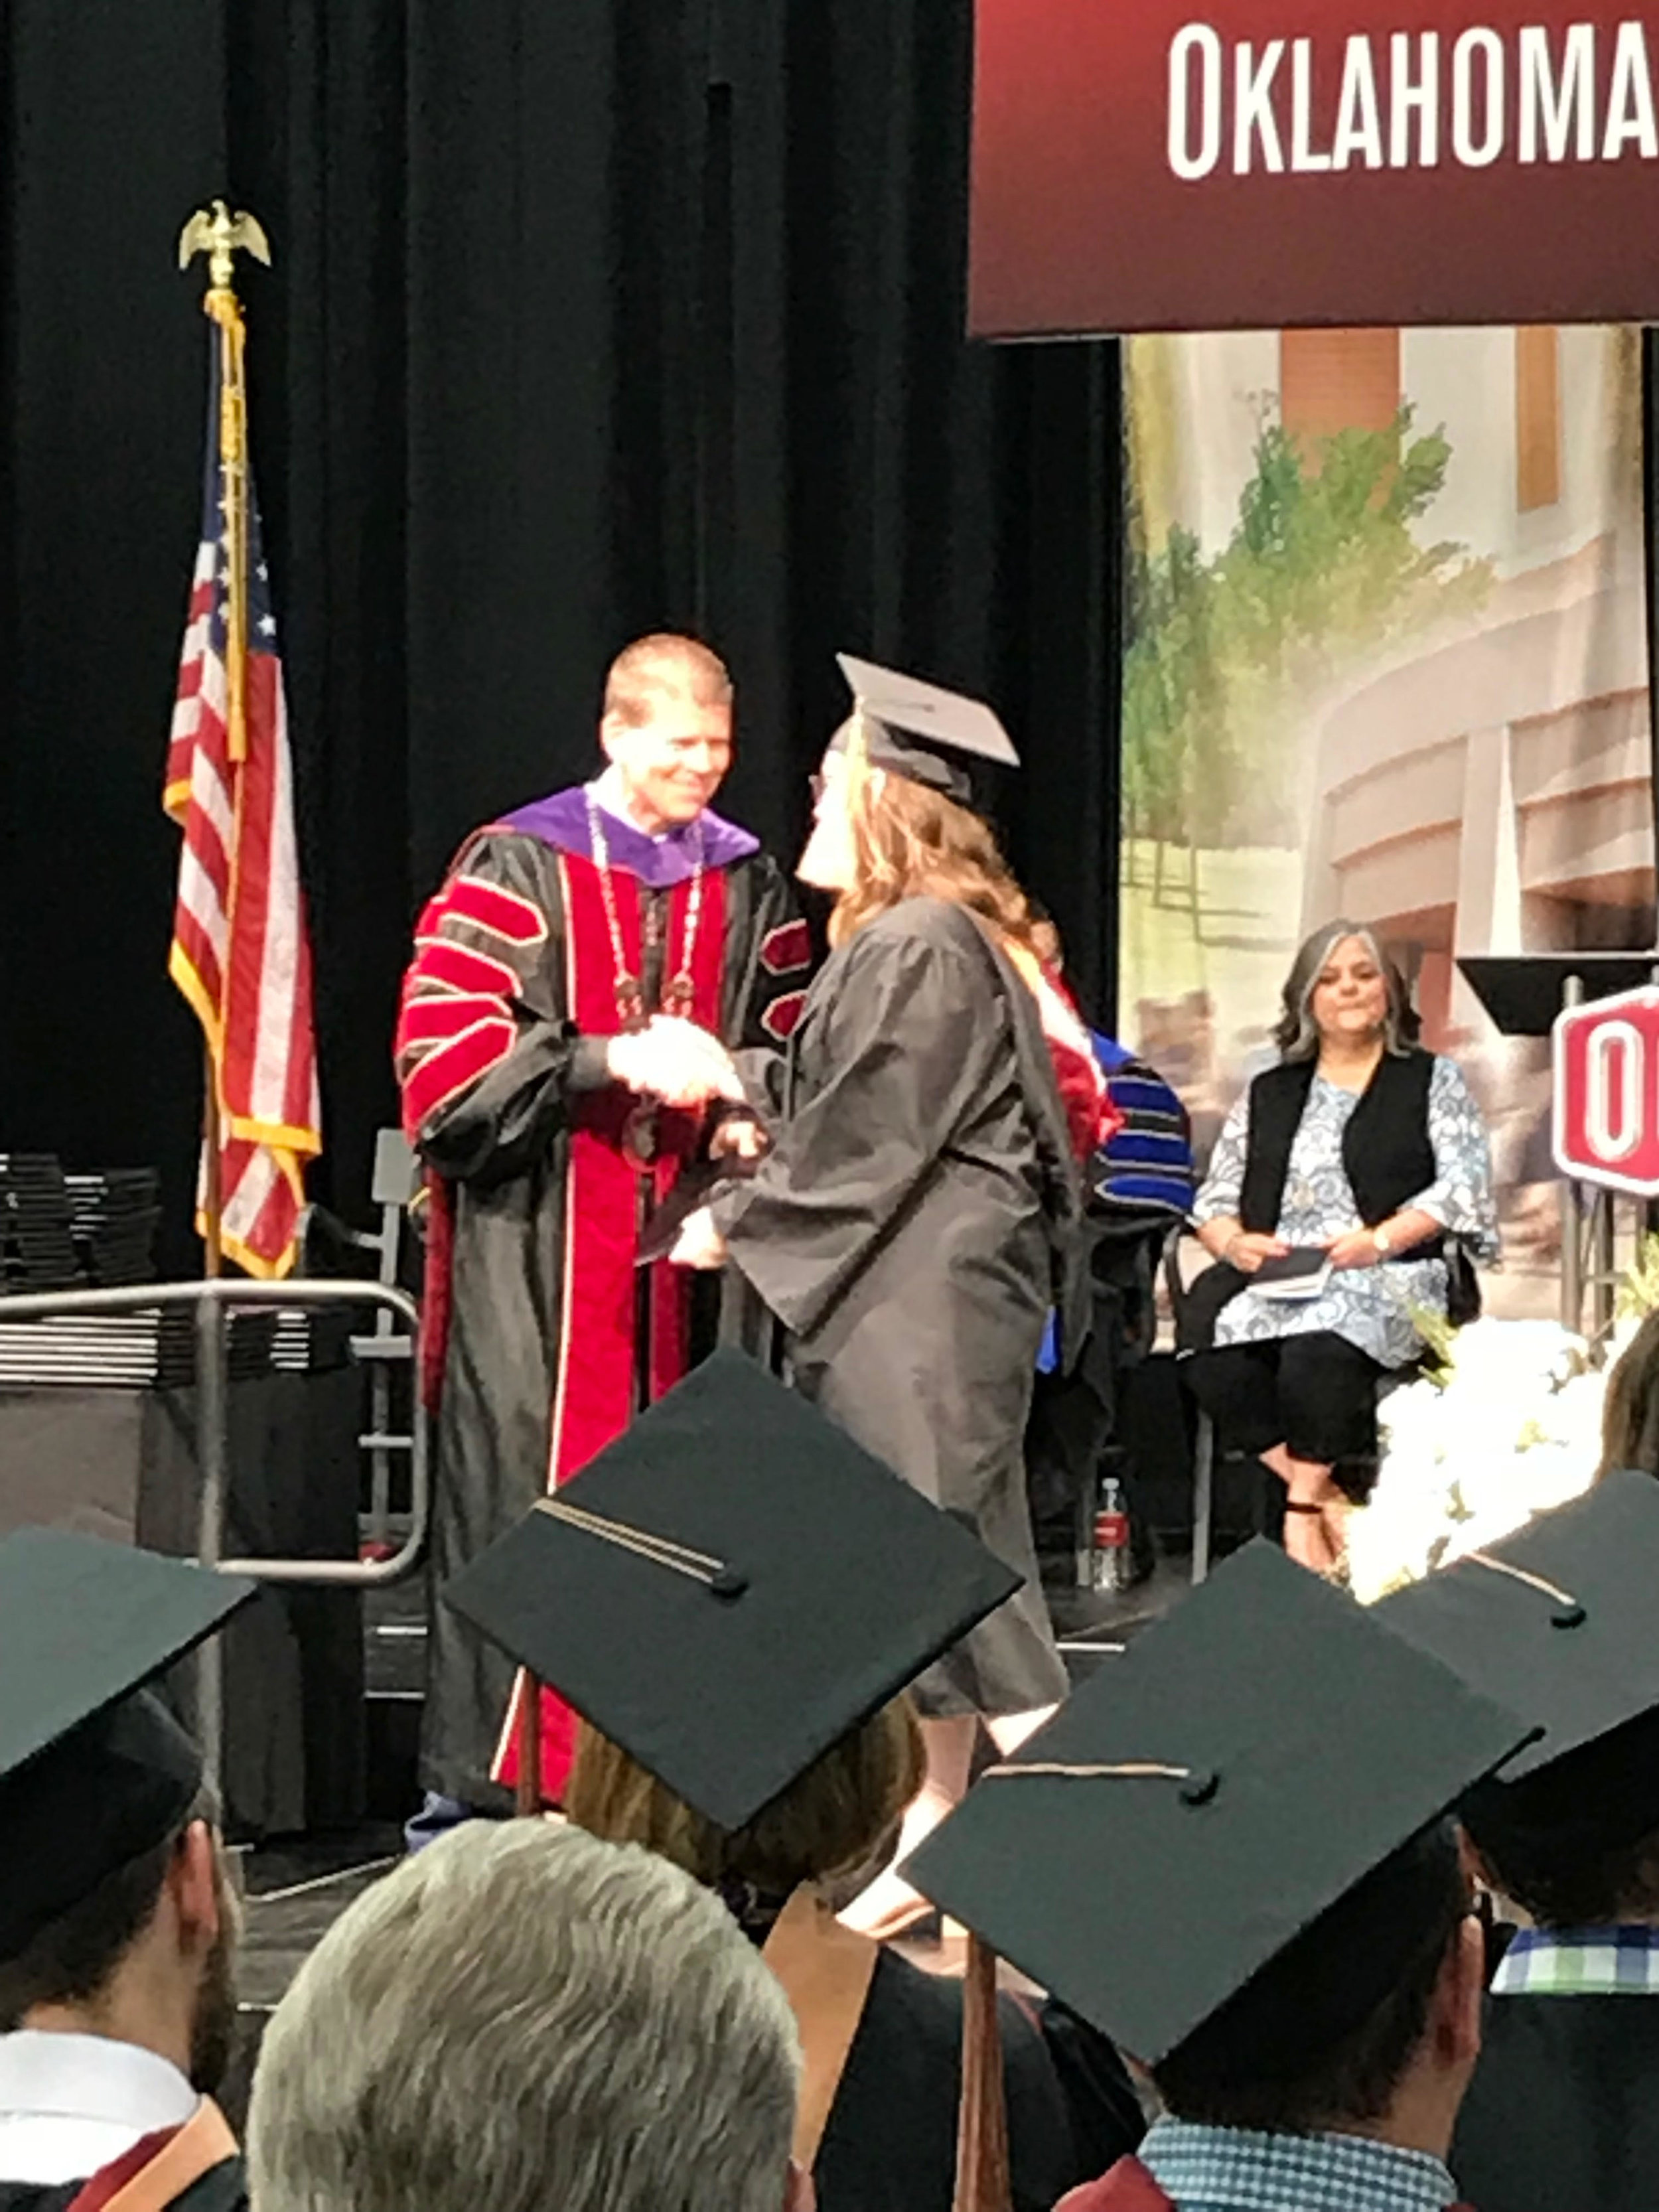 That's me walking the stage at graduation!